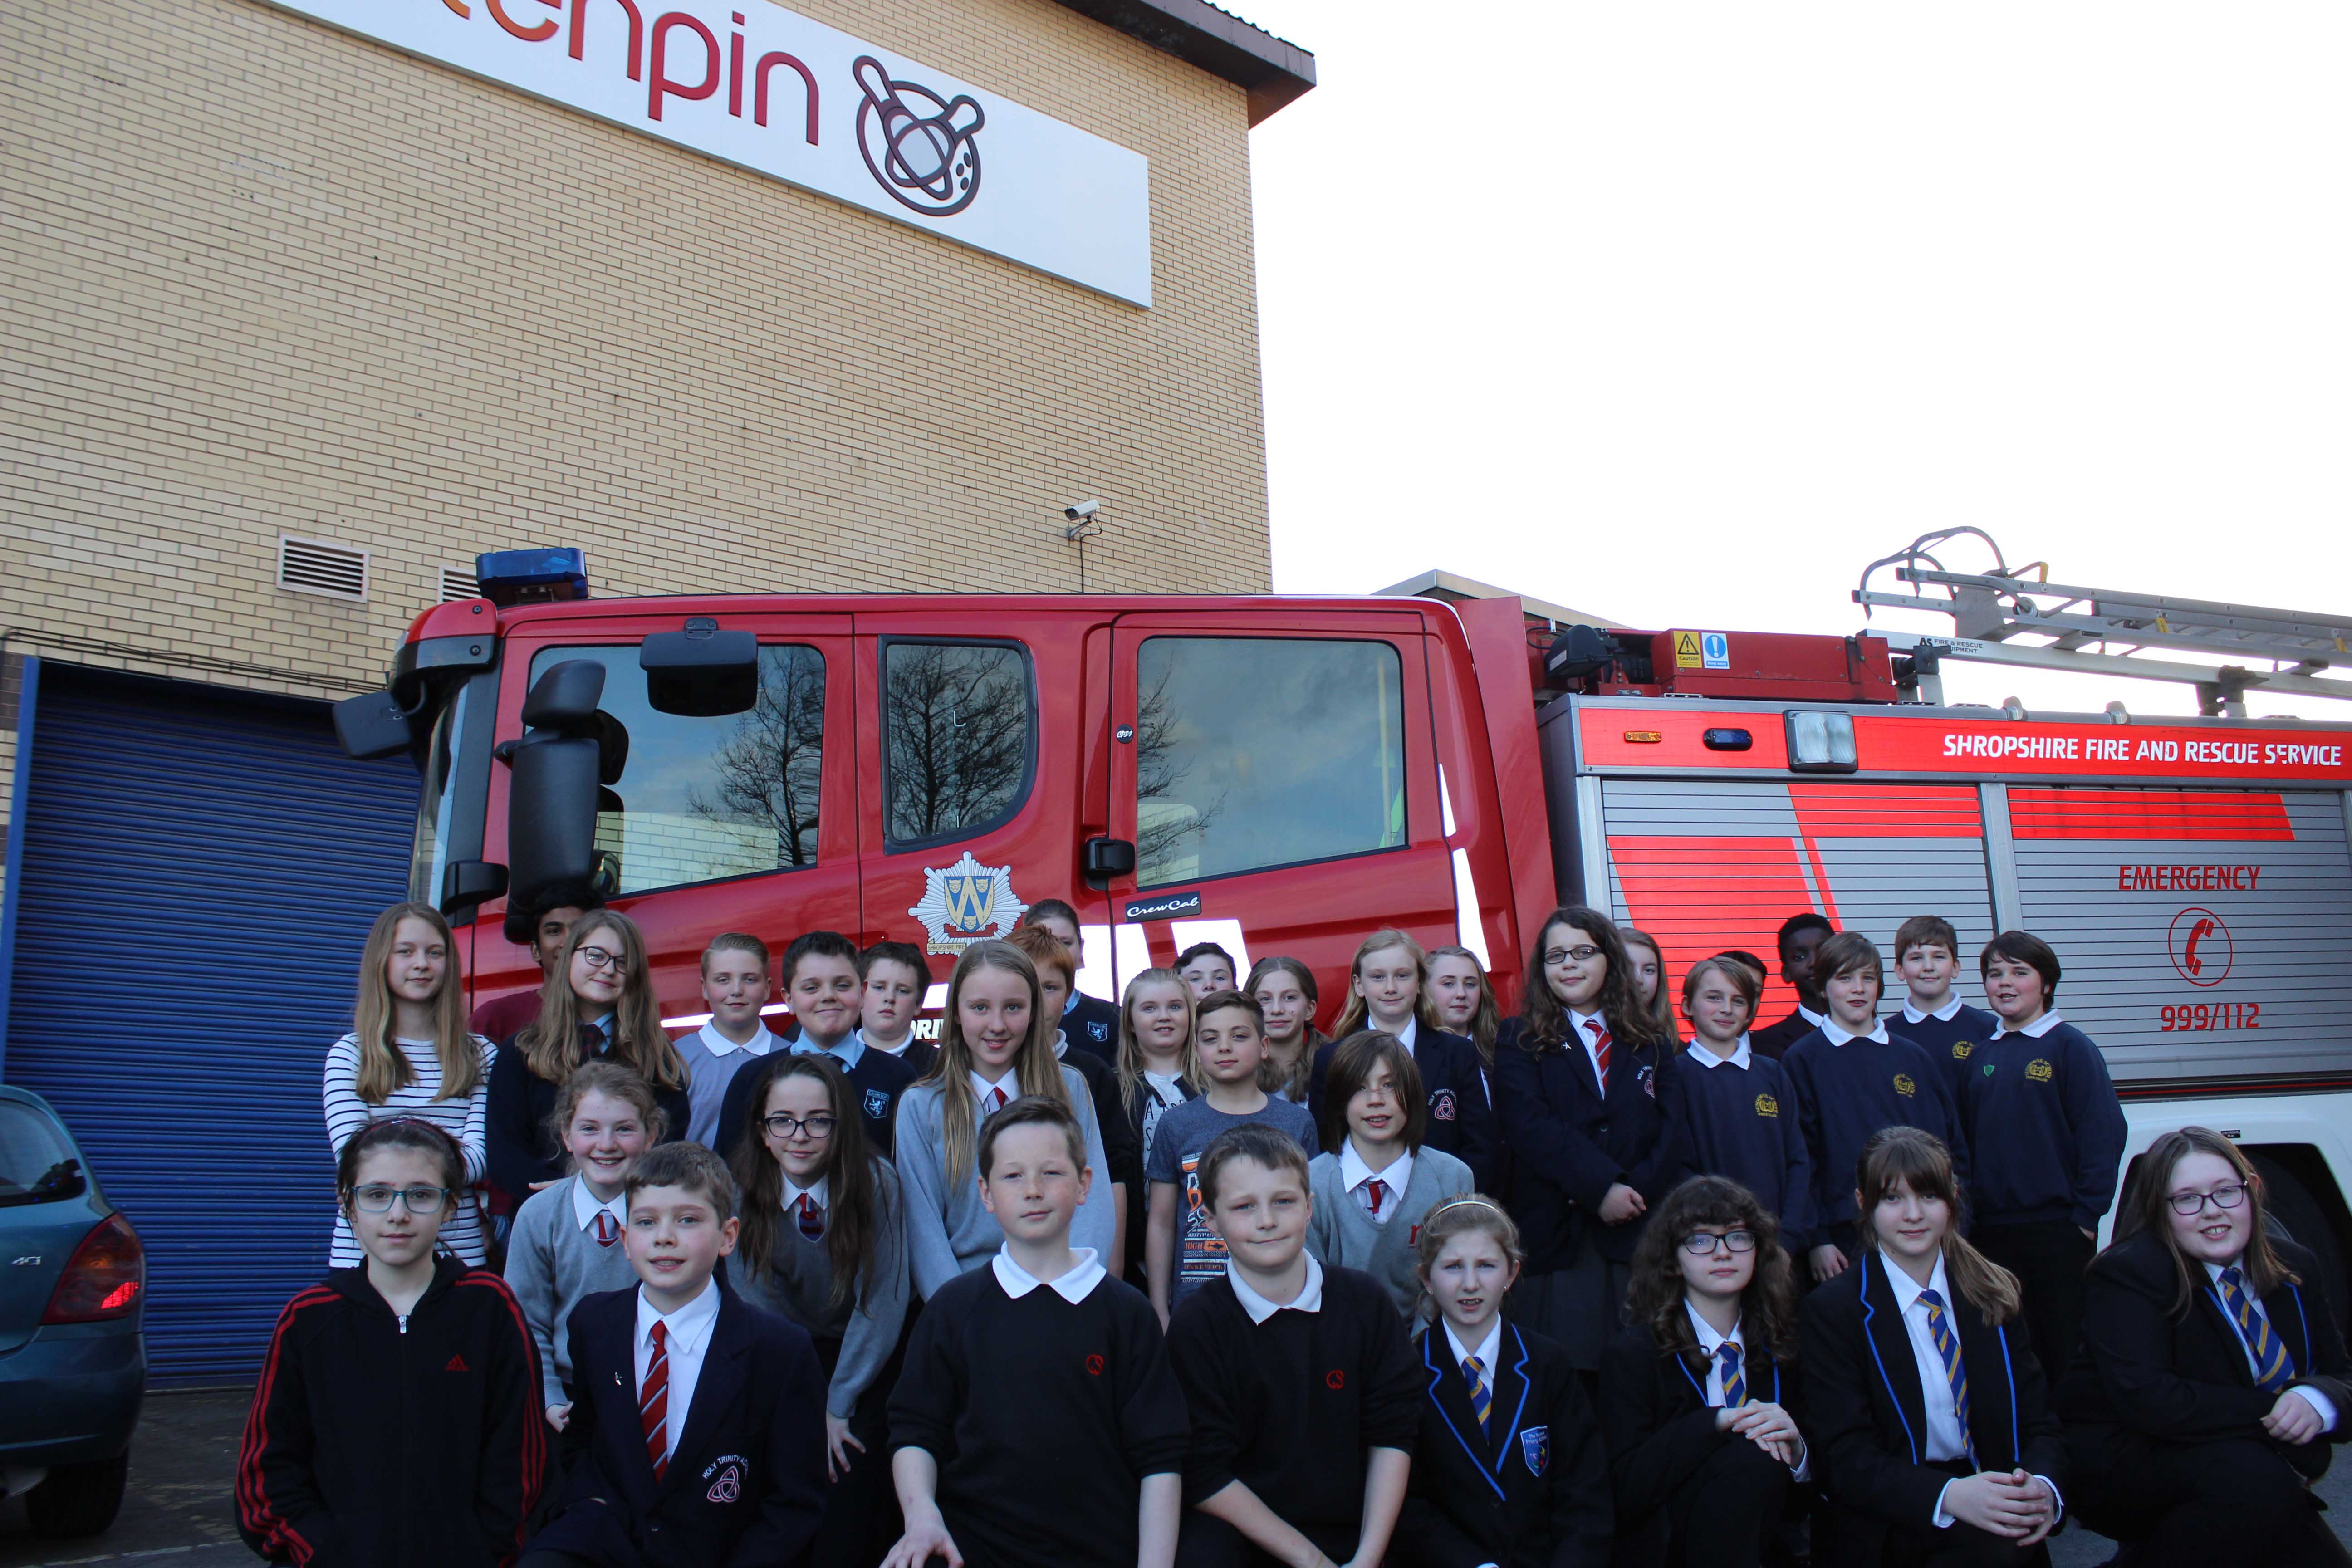 More than 2,400 Shropshire children learned important life skills in the annual fire safety quiz Pictured are some of the winning teams from across the county.